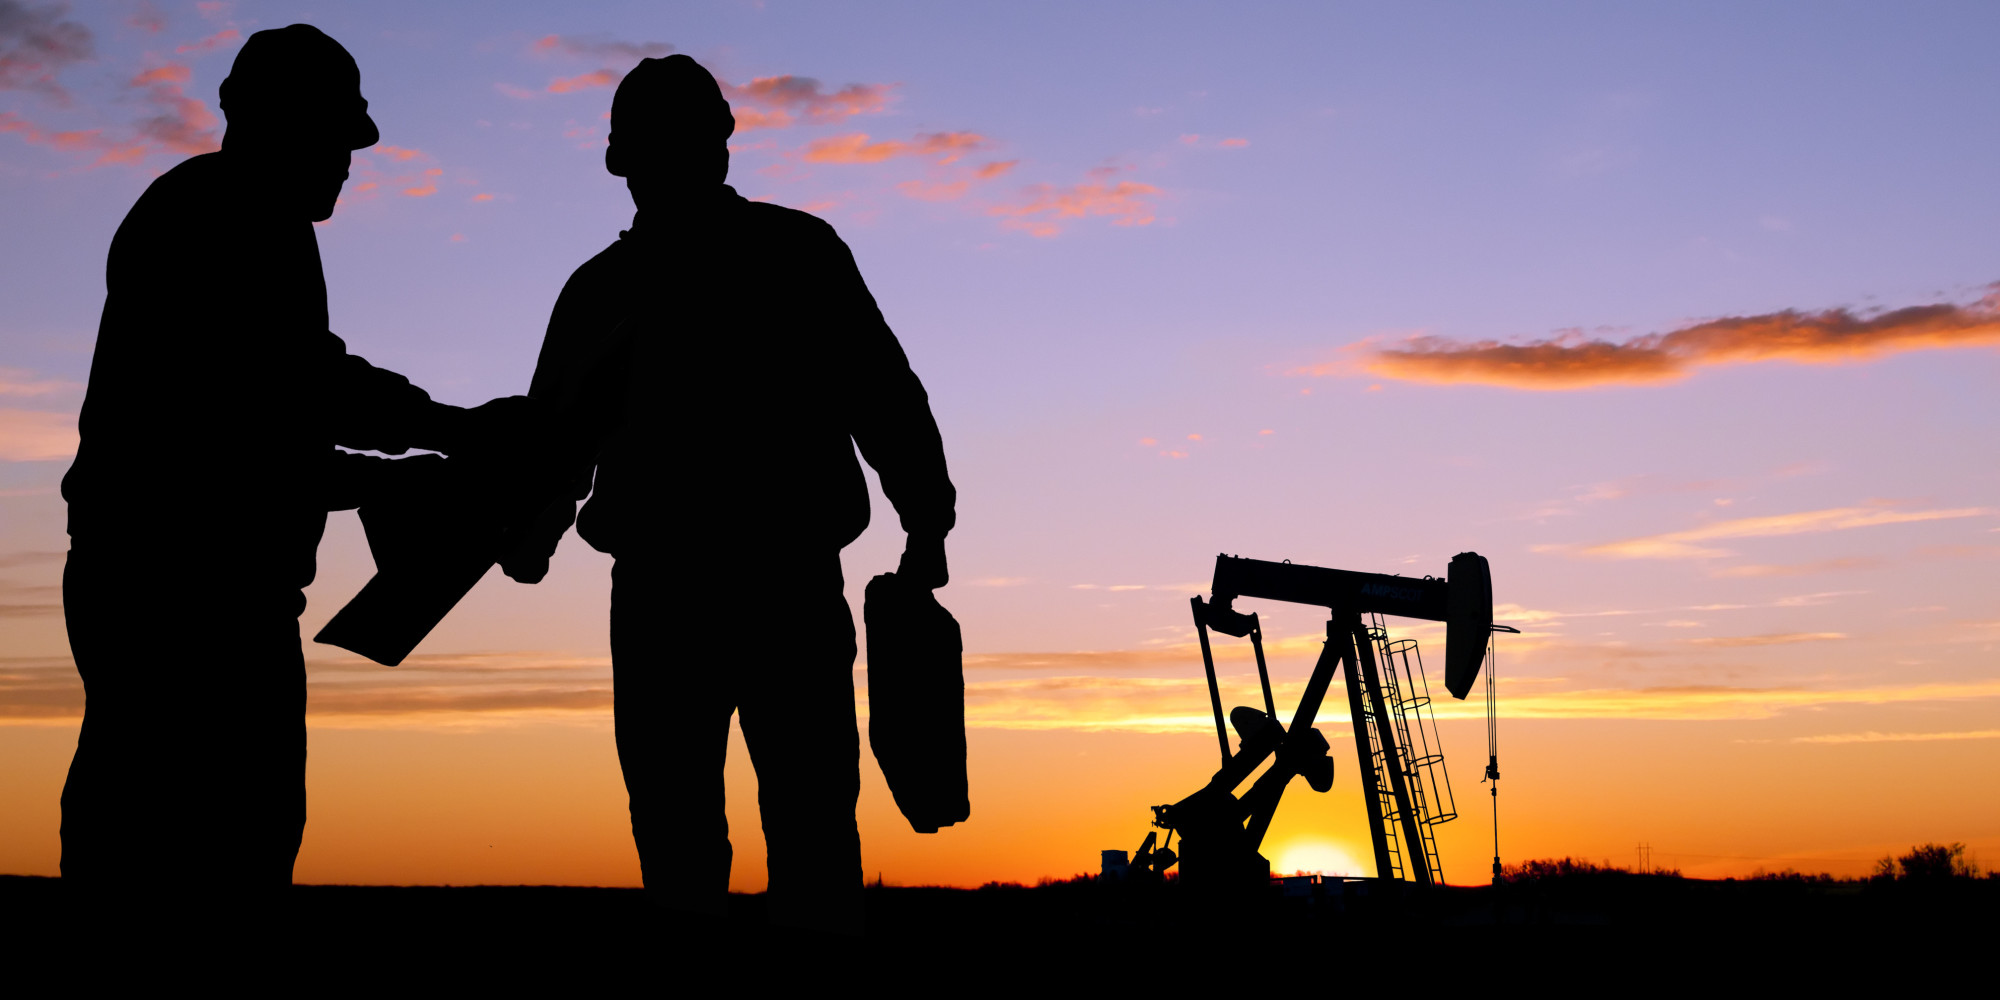 dating oil field worker Oil field workers perform different jobs to pump oil from the ground and deliver it to refineries they typically work full-time but in shifts because oil.